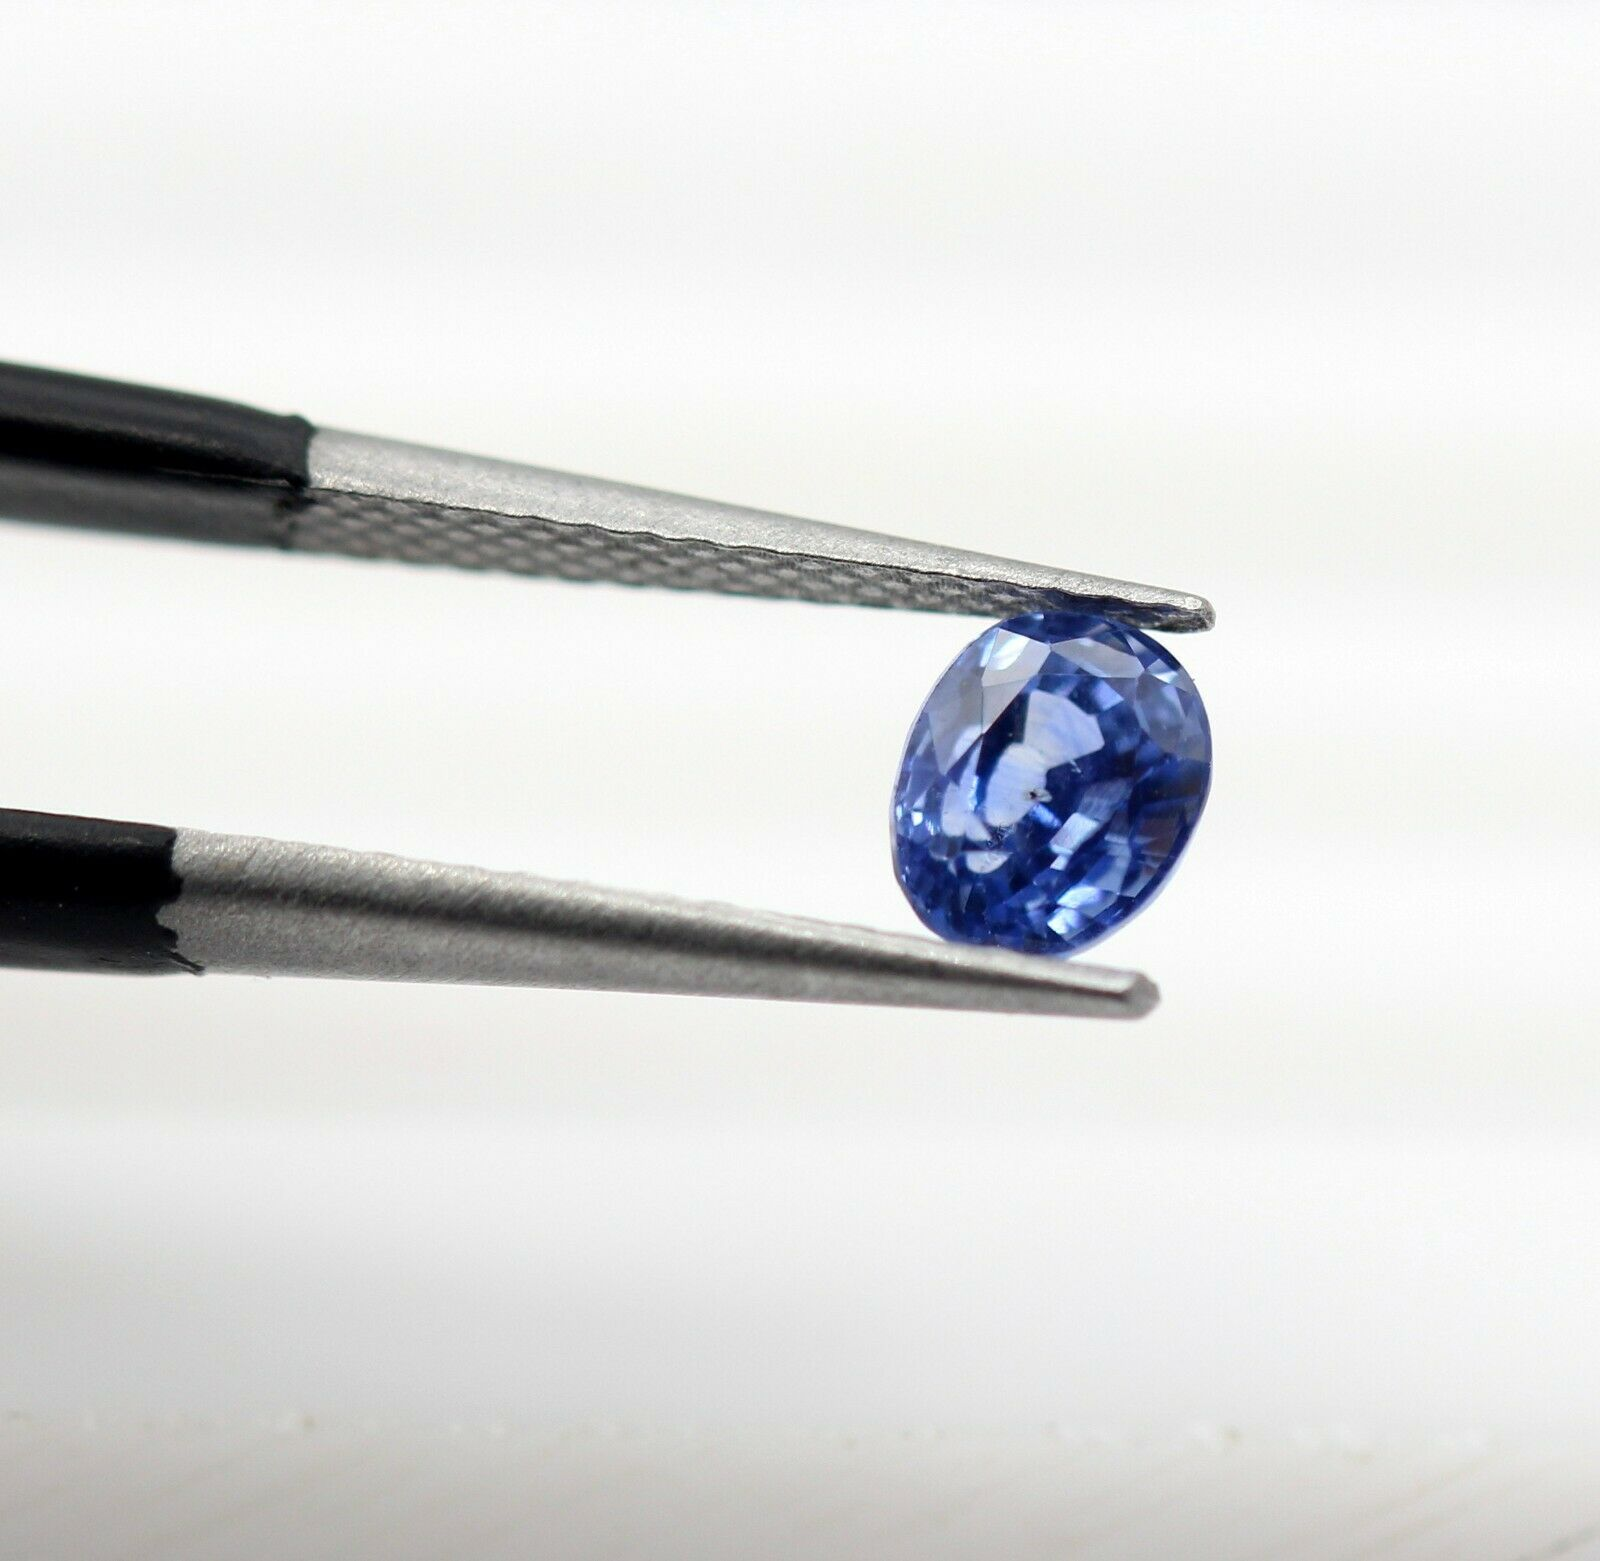 0.83 Ct Blue Sapphire Natural Gemstone Royal Blue Color Oval Cut Ceylon Certified